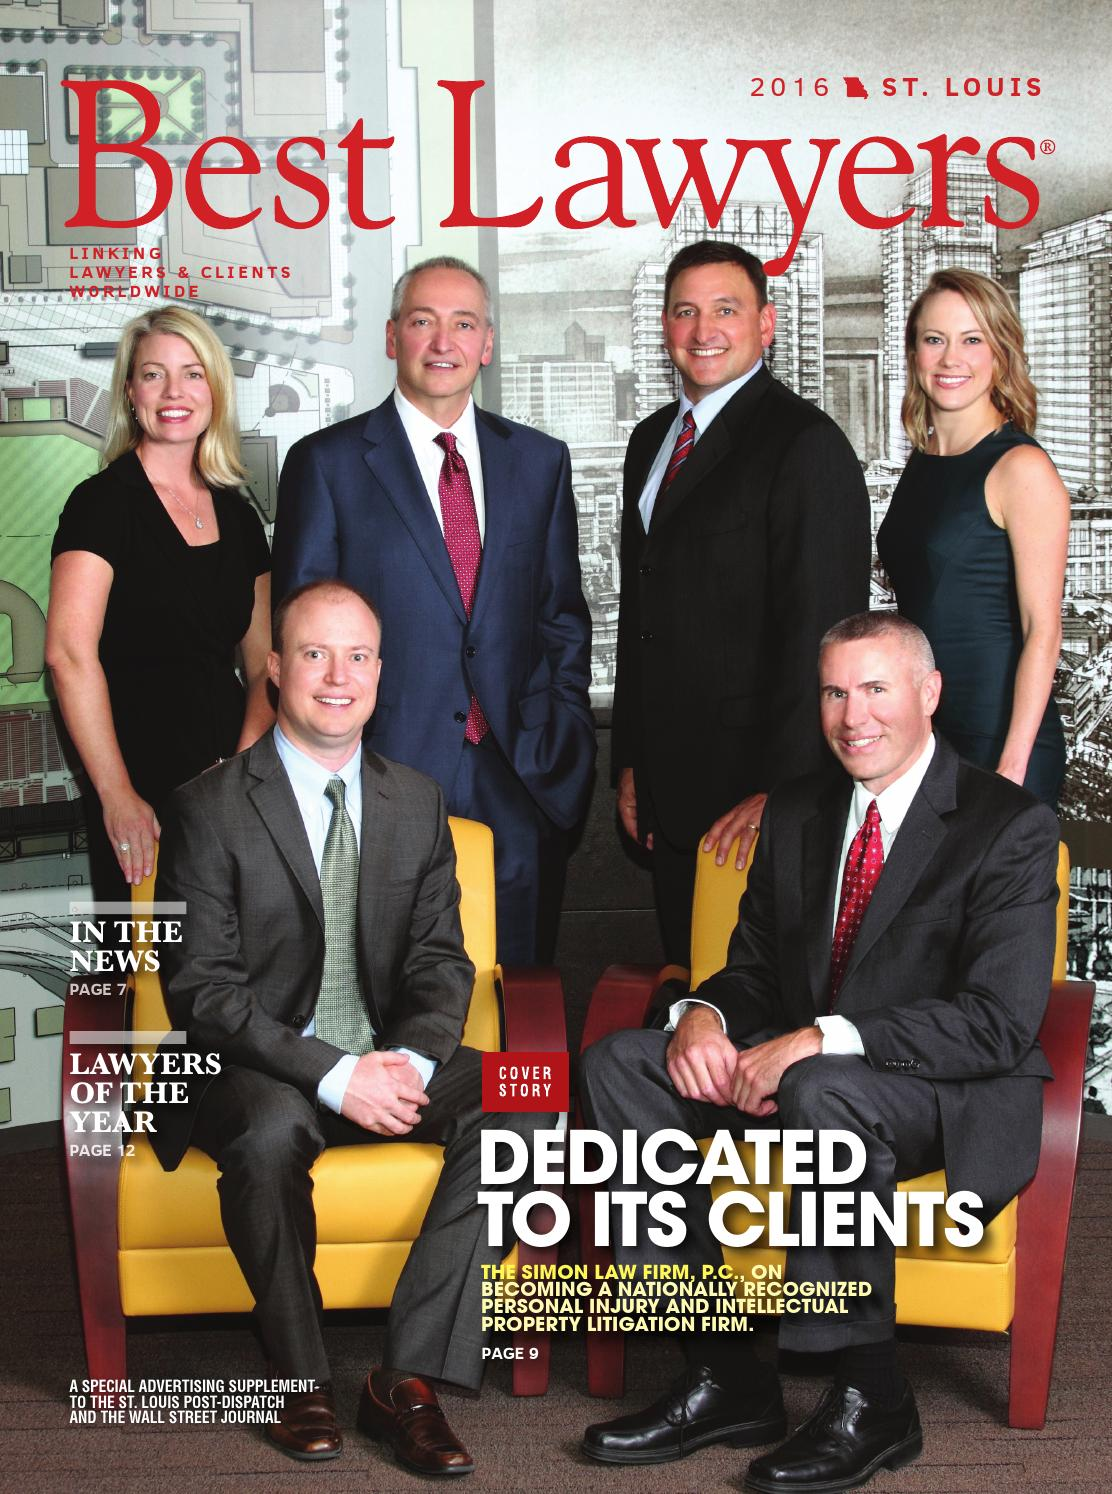 Best Lawyers in St. Louis 2016 by Best Lawyers - Issuu - photo#41